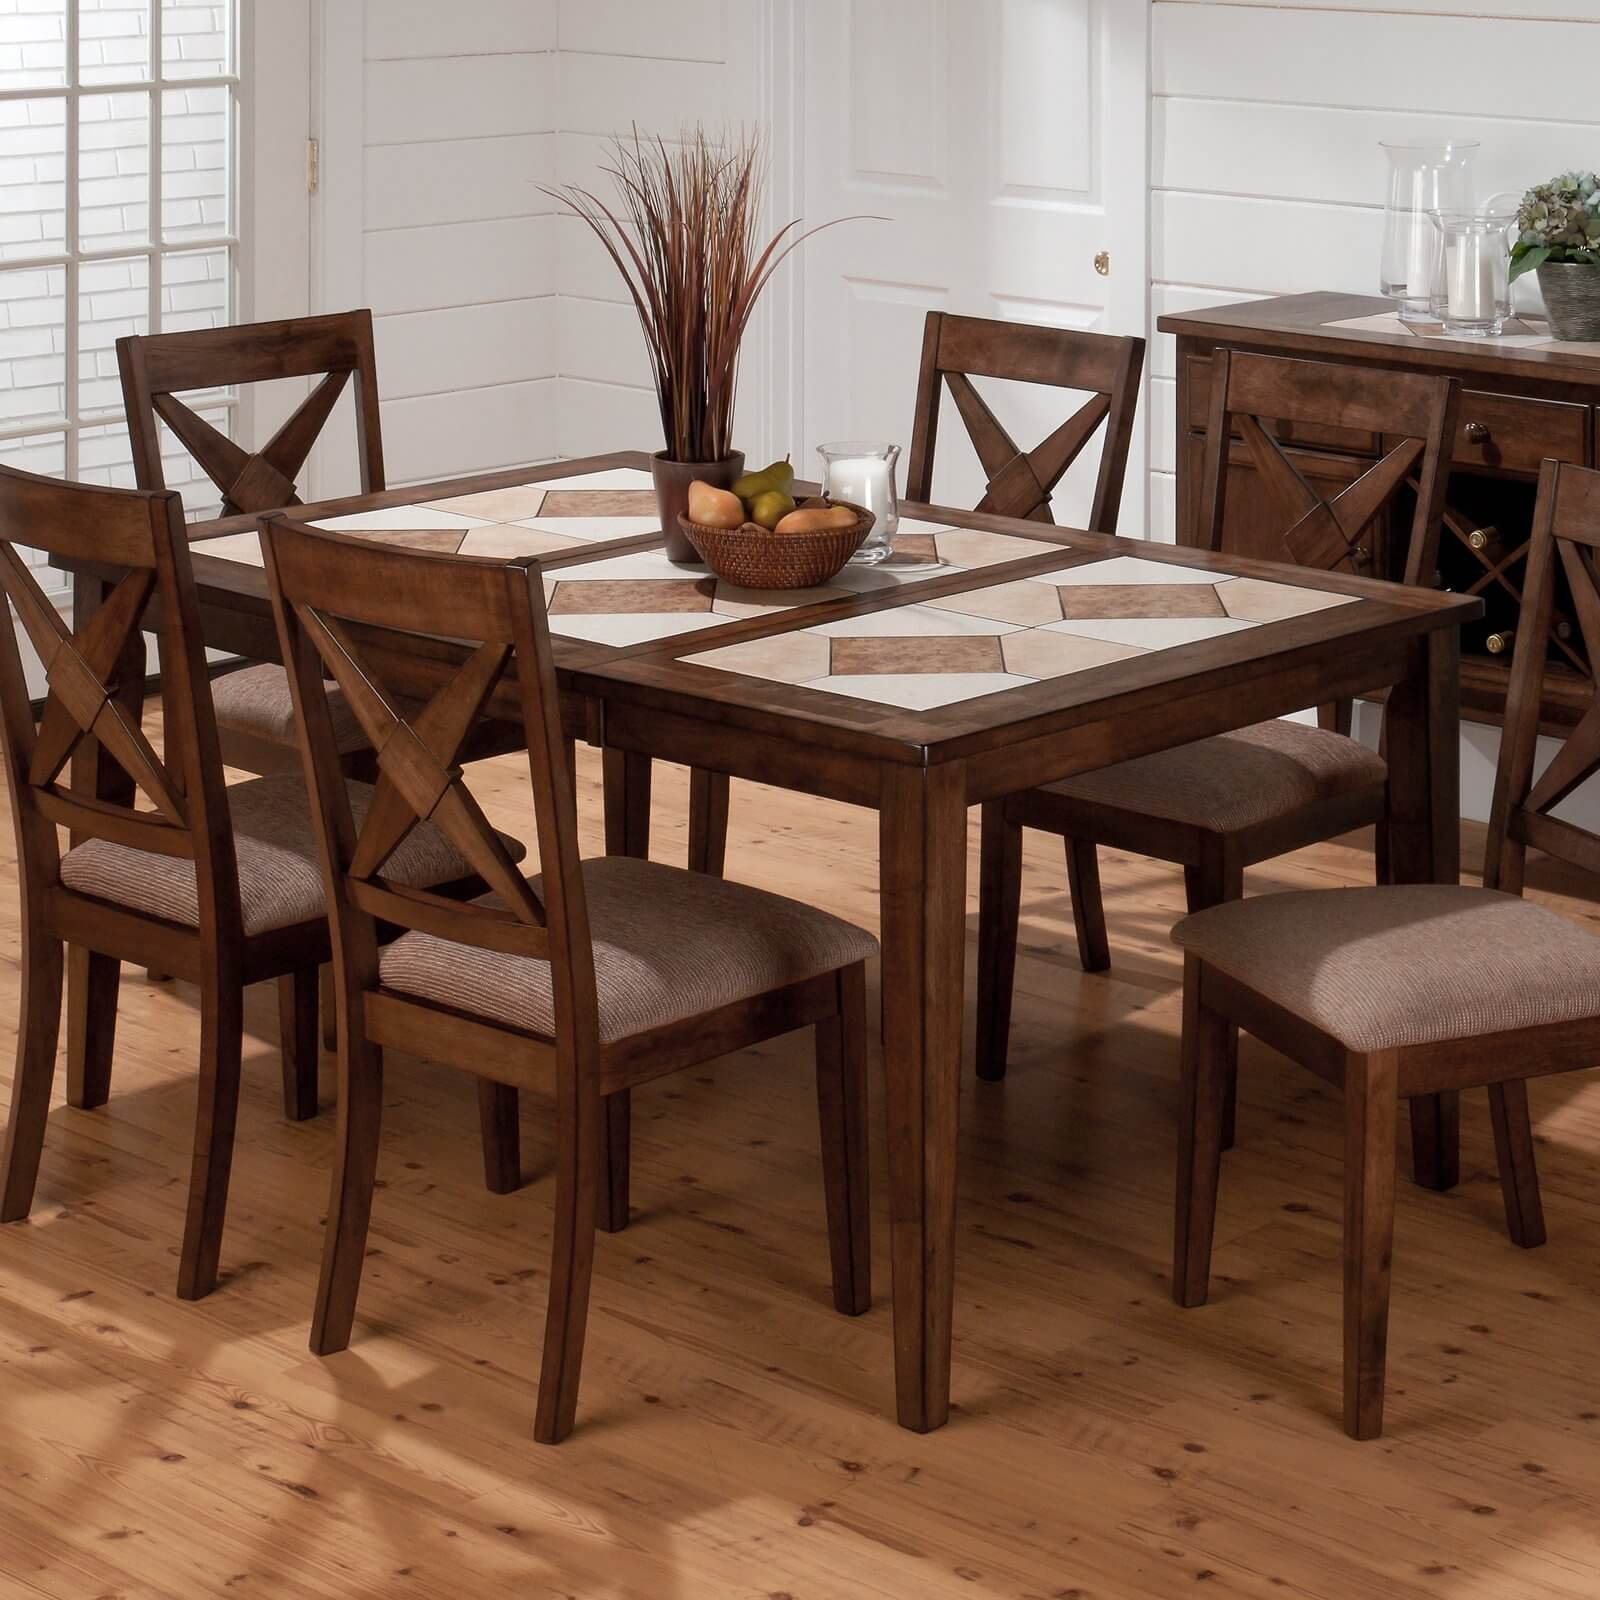 where can i buy a kitchen table how much does an outdoor cost 29 types of dining room tables extensive buying guide